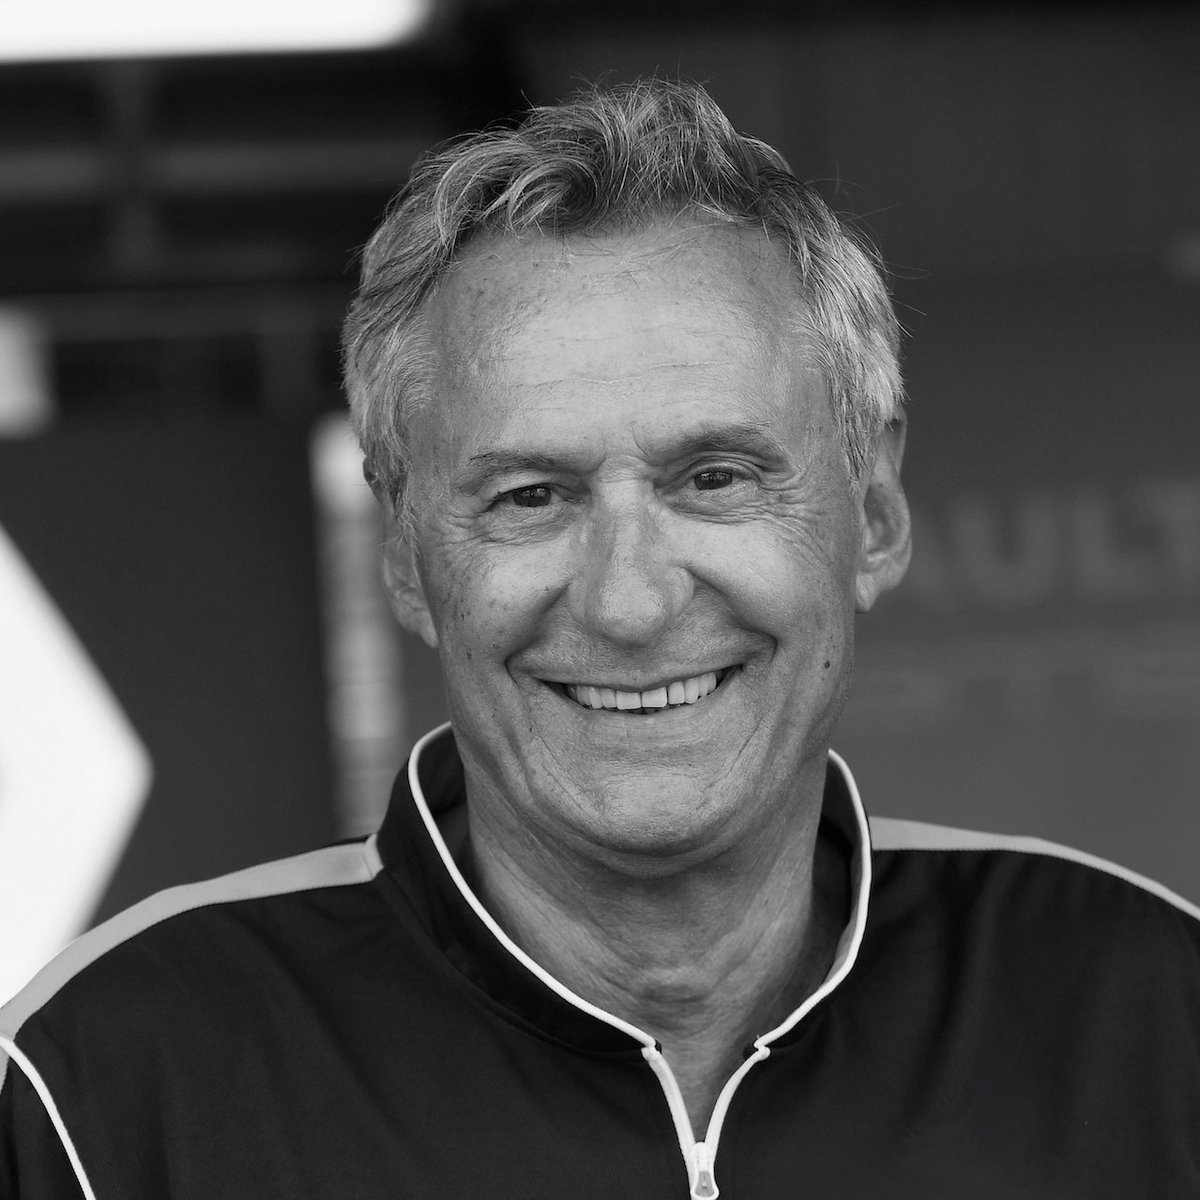 So sad to hear that! JP was a great man and a true racer. It's a big loss for the whole motorsport community. I have many great memories with JP, and I'm proud to say I raced for him and @damsracing back in 2013 in GP2. Rest in peace my friend